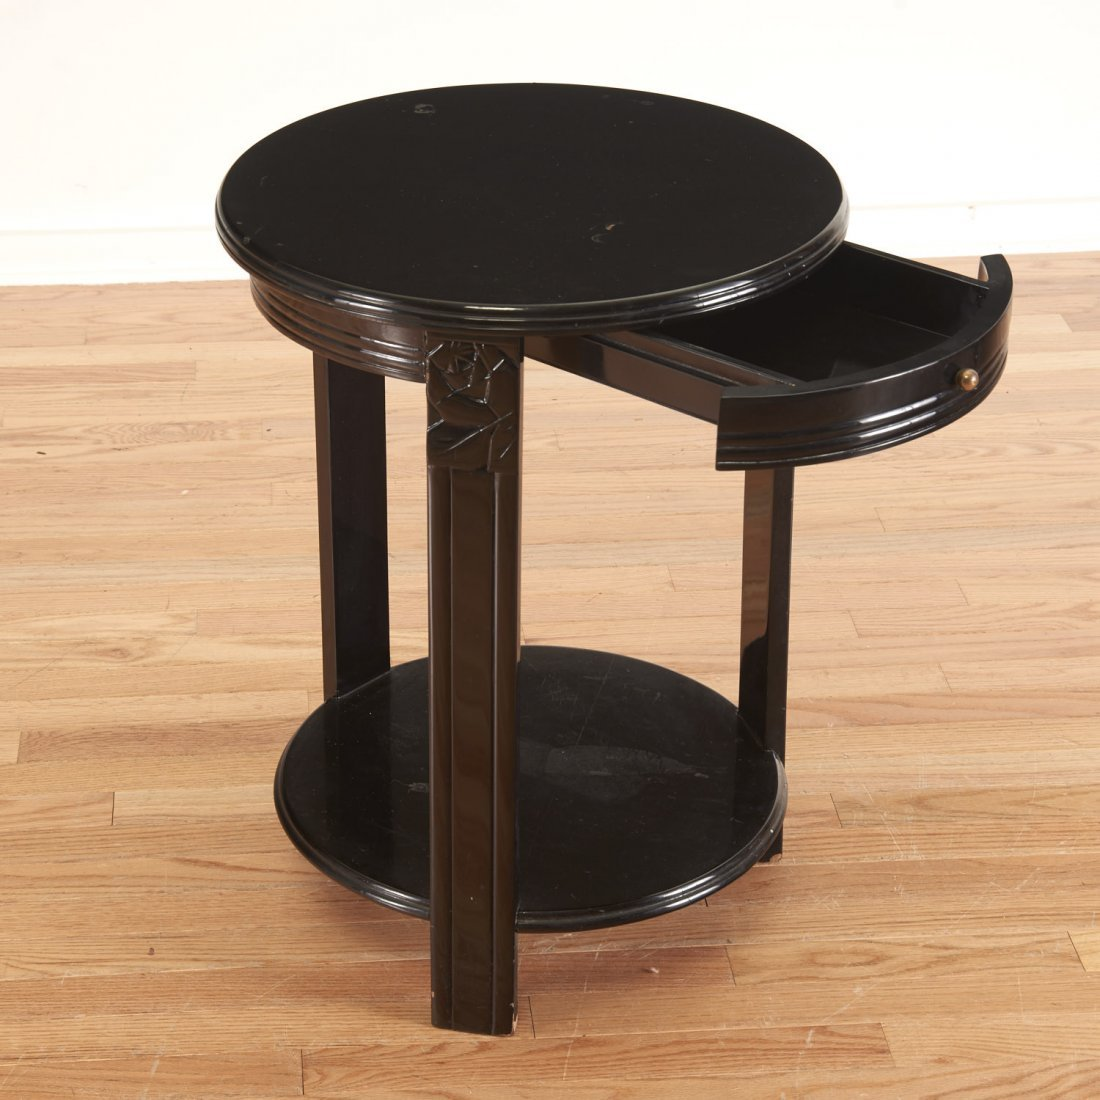 Art Deco style black lacquered center table - 2